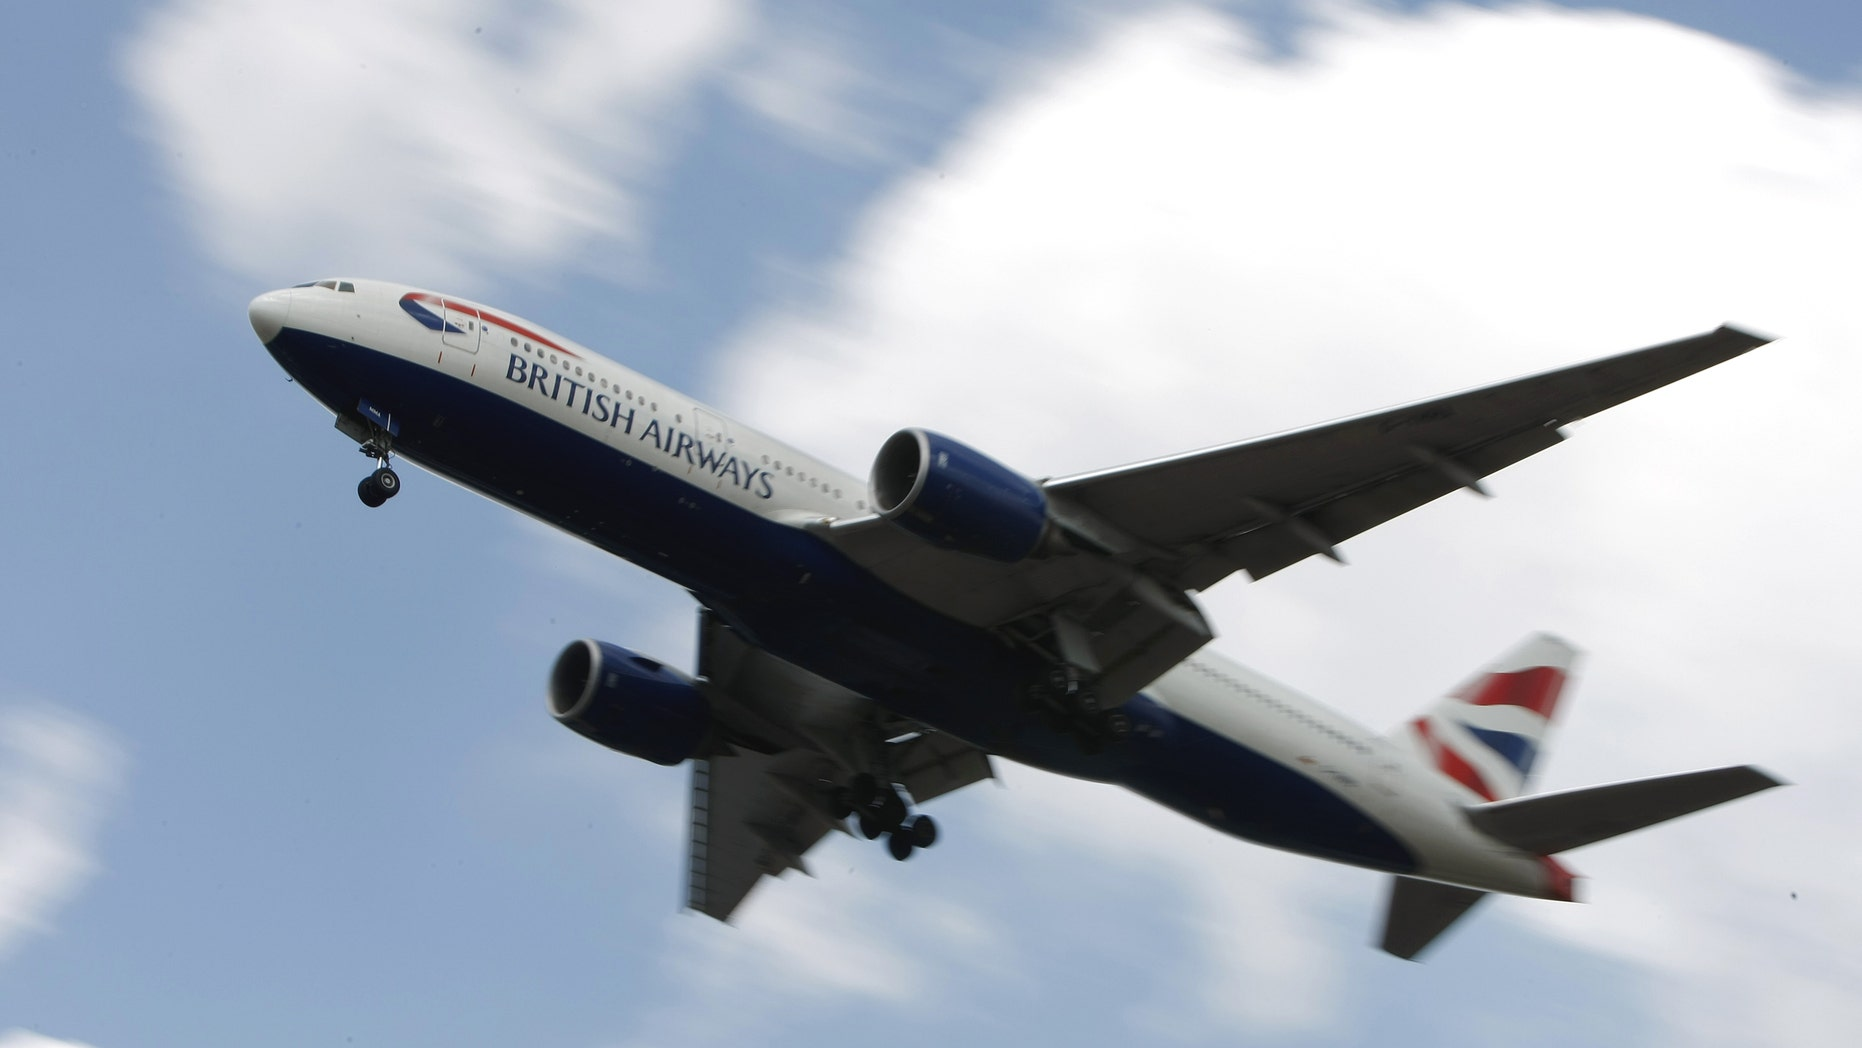 A British Airways plane comes into land at London's Heathrow Airport, Thursday, May, 27, 2010. British Airways is said to be able to run some 50 percent of short haul flights and some 60 percent of long haul flights from Heathrow airport, despite a continued five-day strike by the cabin crew union Unite. (AP Photo/Alastair Grant)